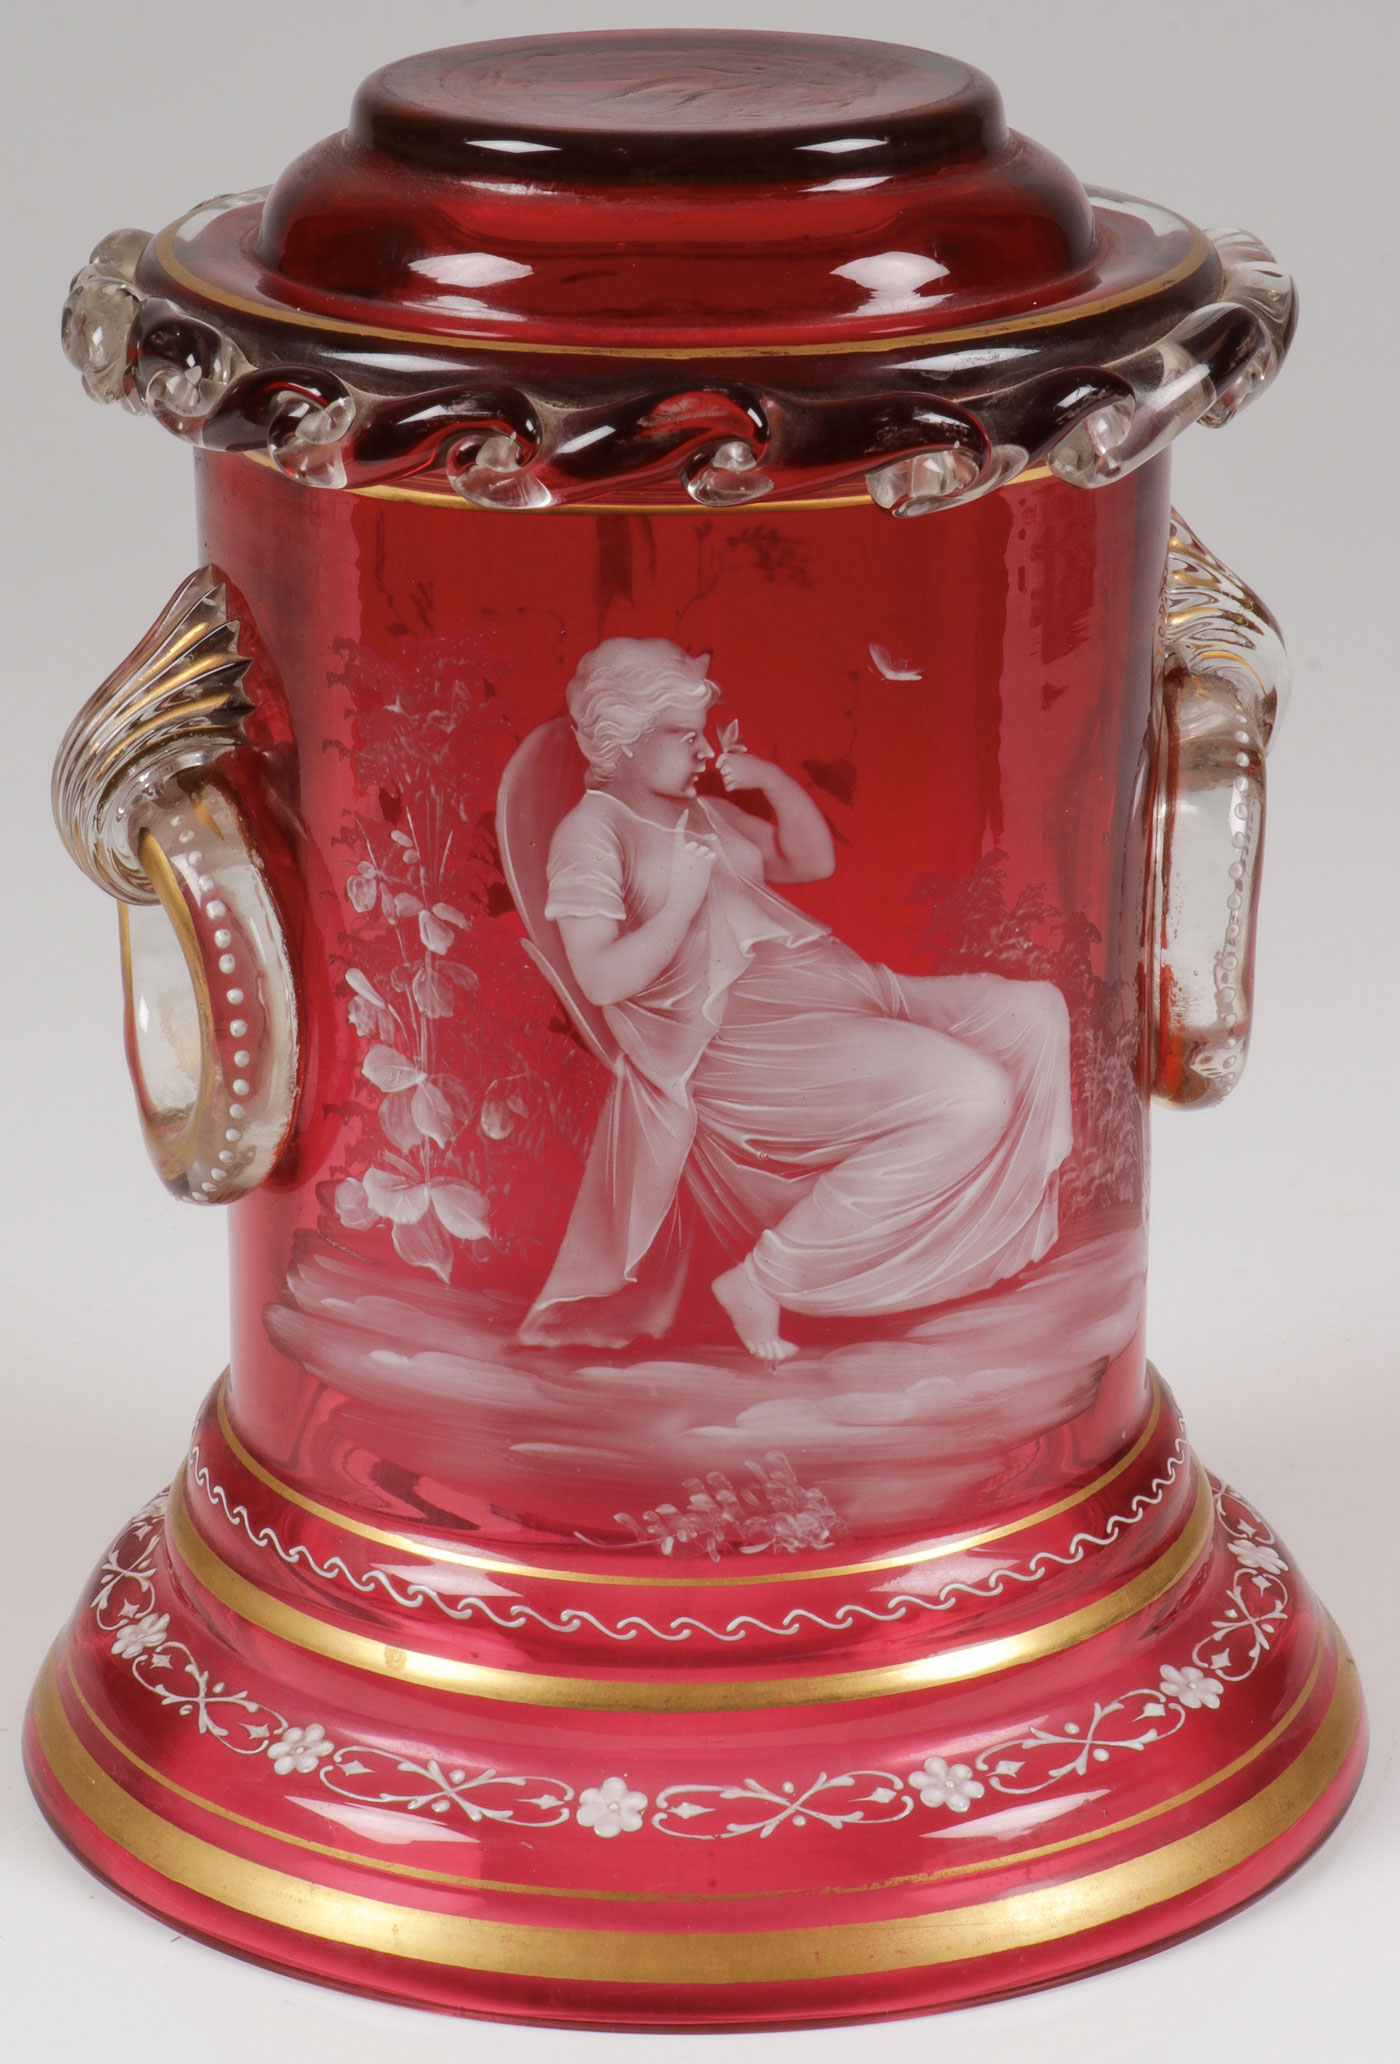 Lot 4 - MARY GREGORY CRANBERRY PEDESTAL, C. 1890